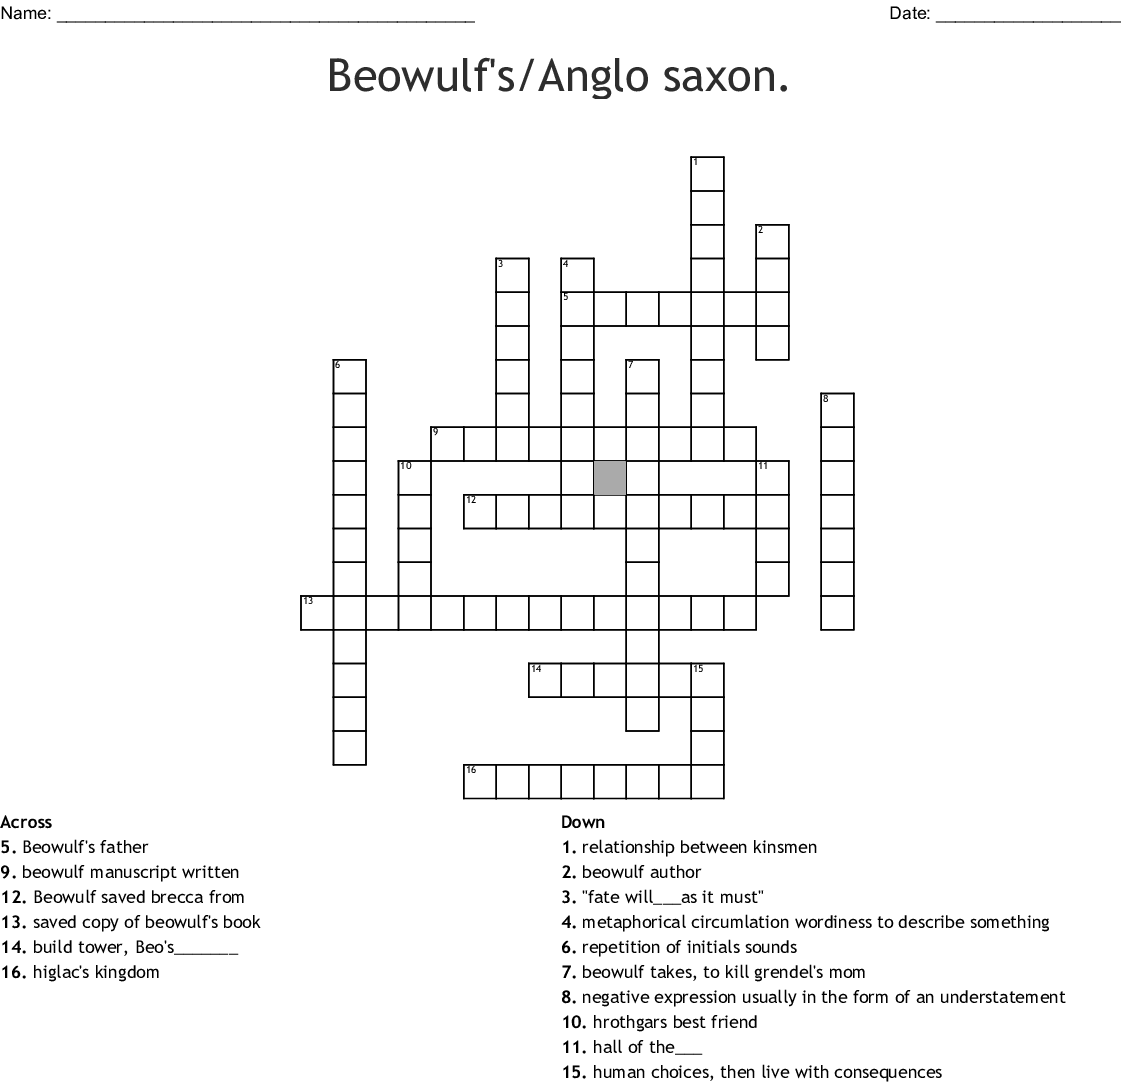 Beowulf Word Search - WordMint